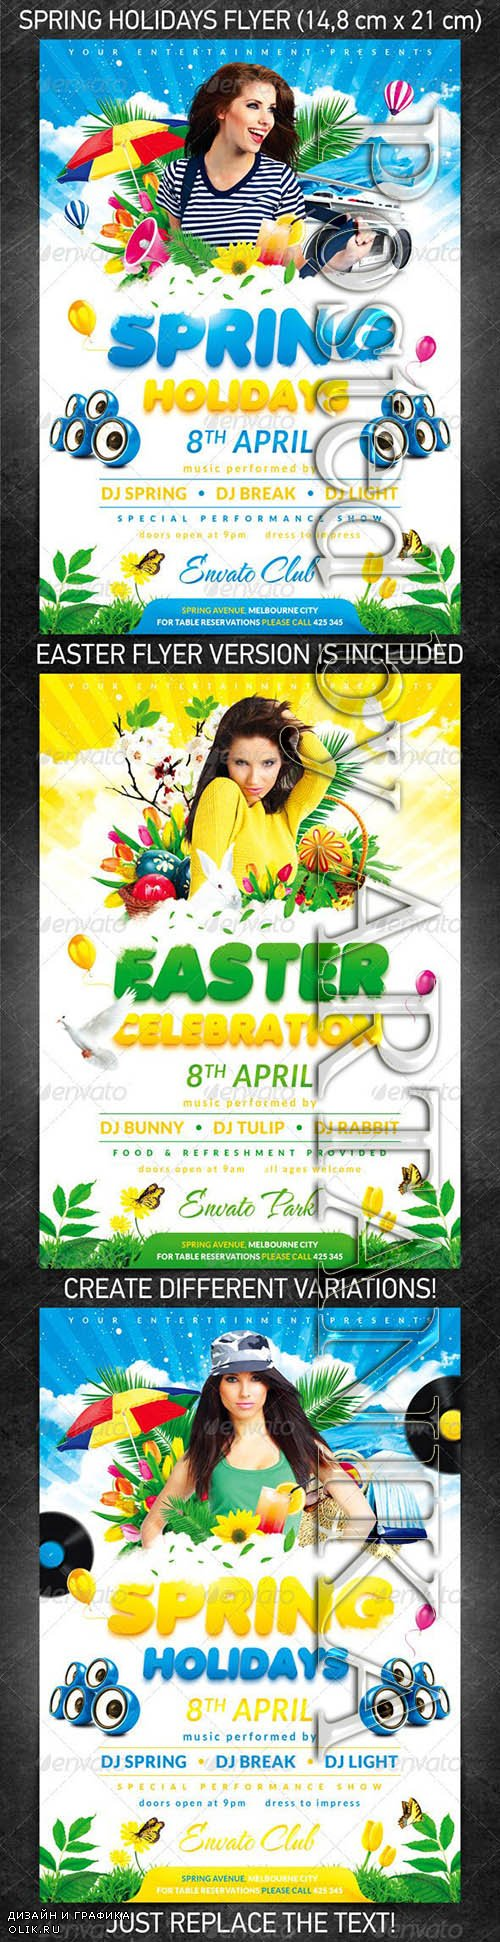 GraphicRiver - Spring Holidays / Easter Celebration Party Flyer 1862154